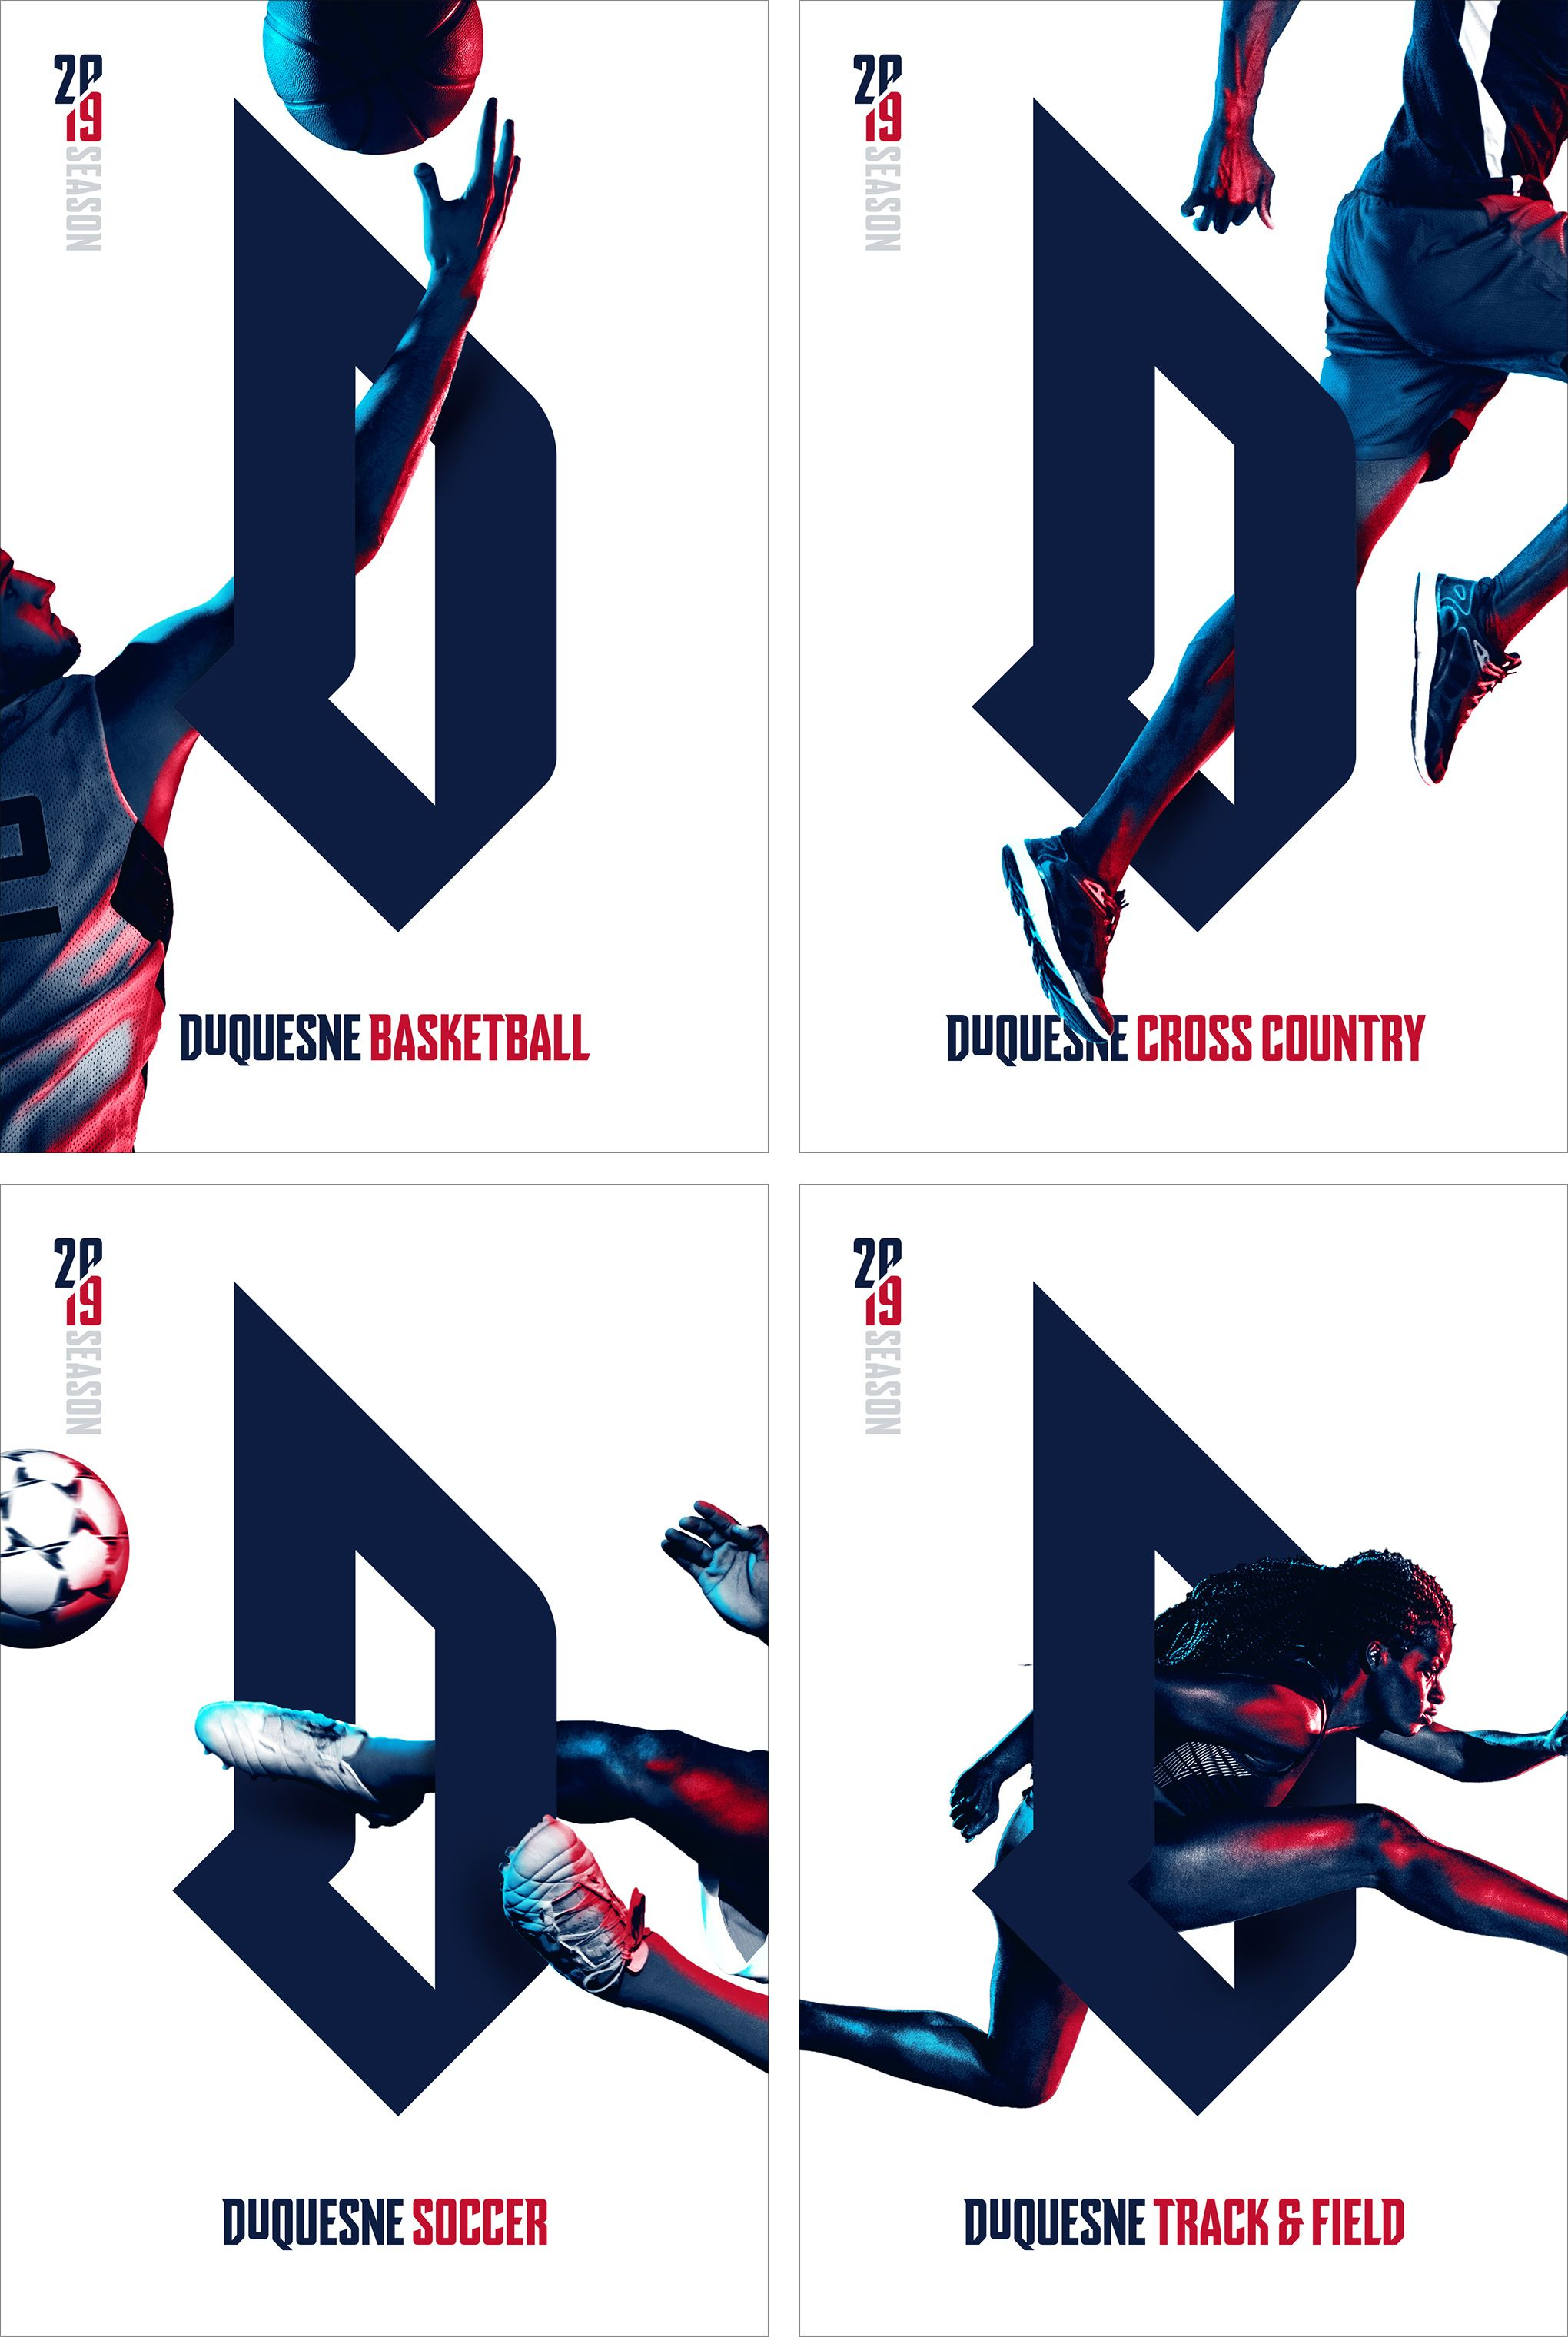 Brand New New Logo and Identity for Duquesne University